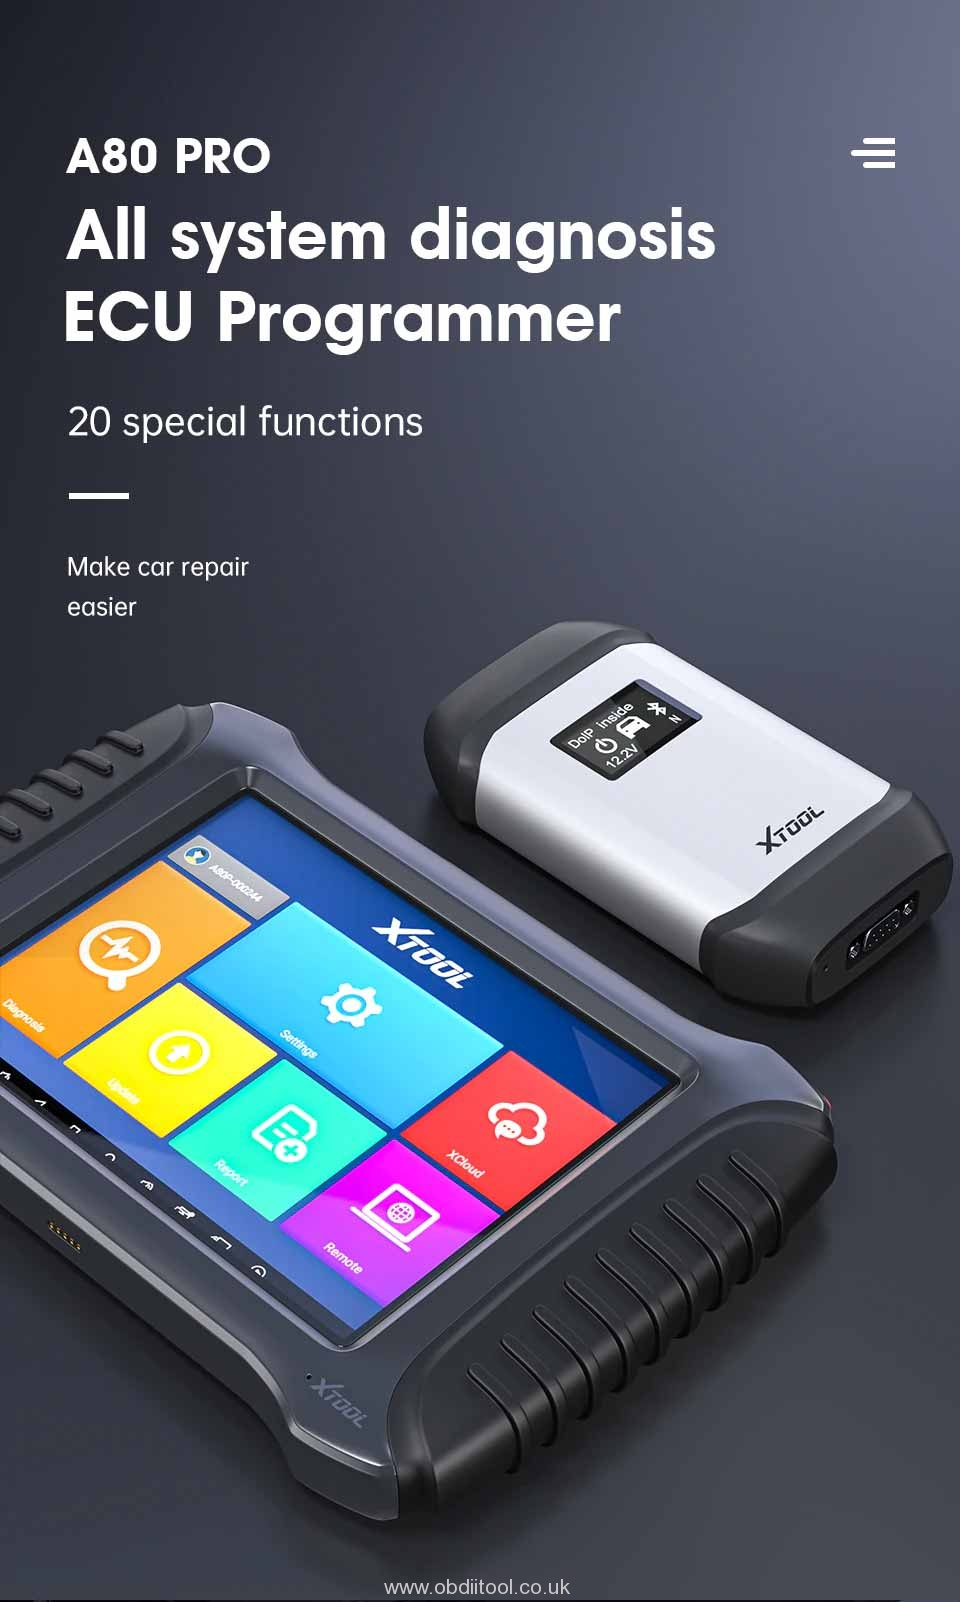 Xtool A80 Pro User Guide 1